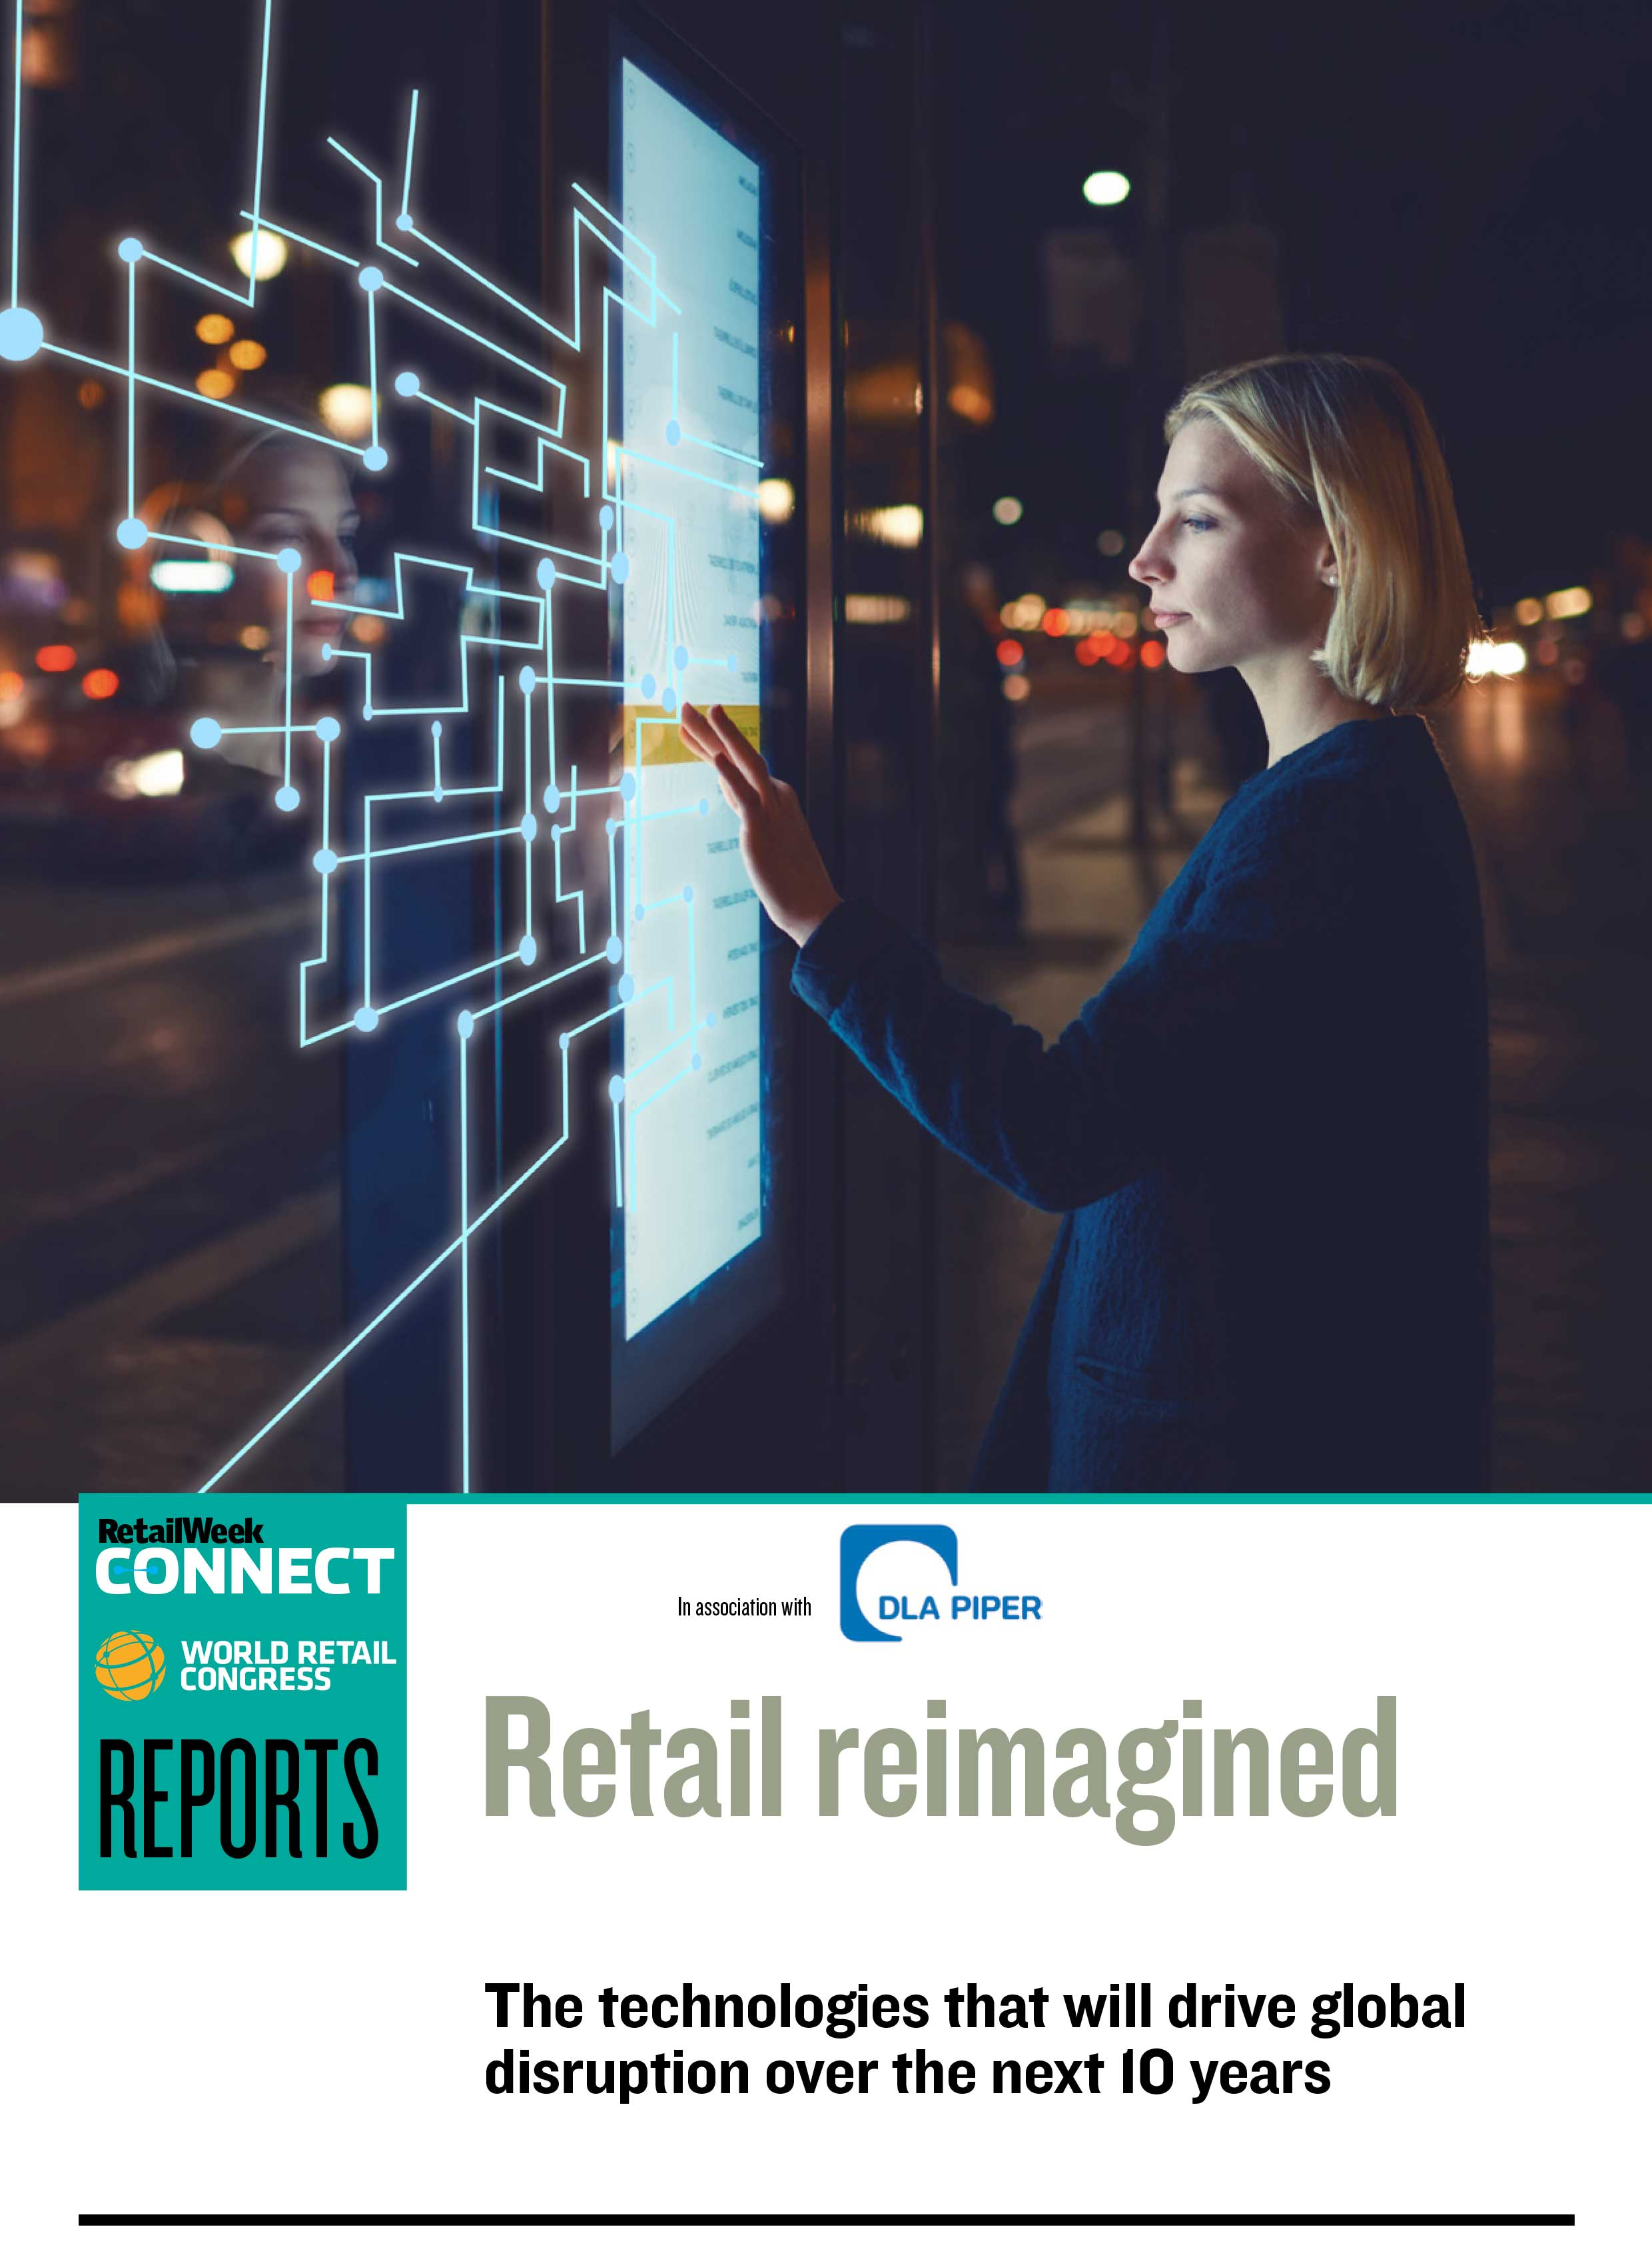 DLA Piper Retail reimagined